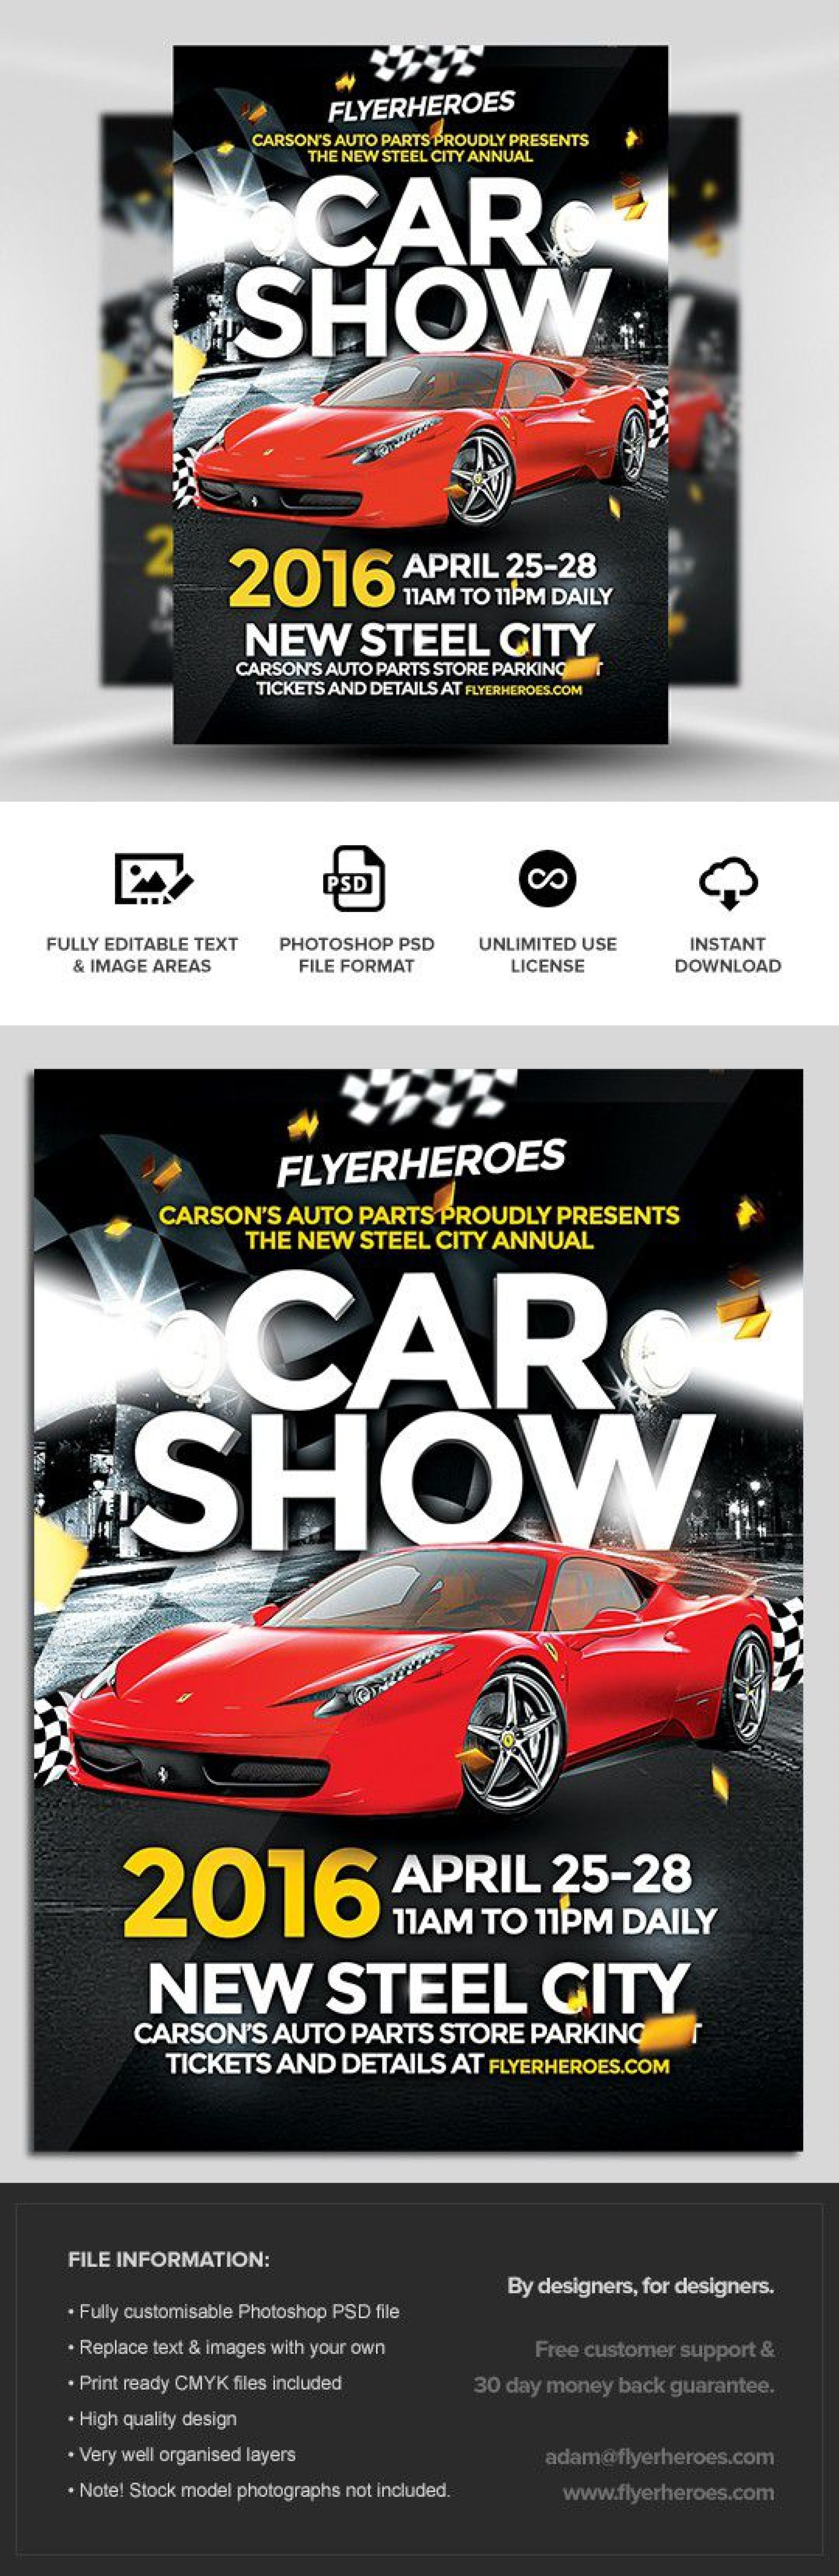 005 Frightening Free Car Show Flyer Template Inspiration  Psd And Bike1920